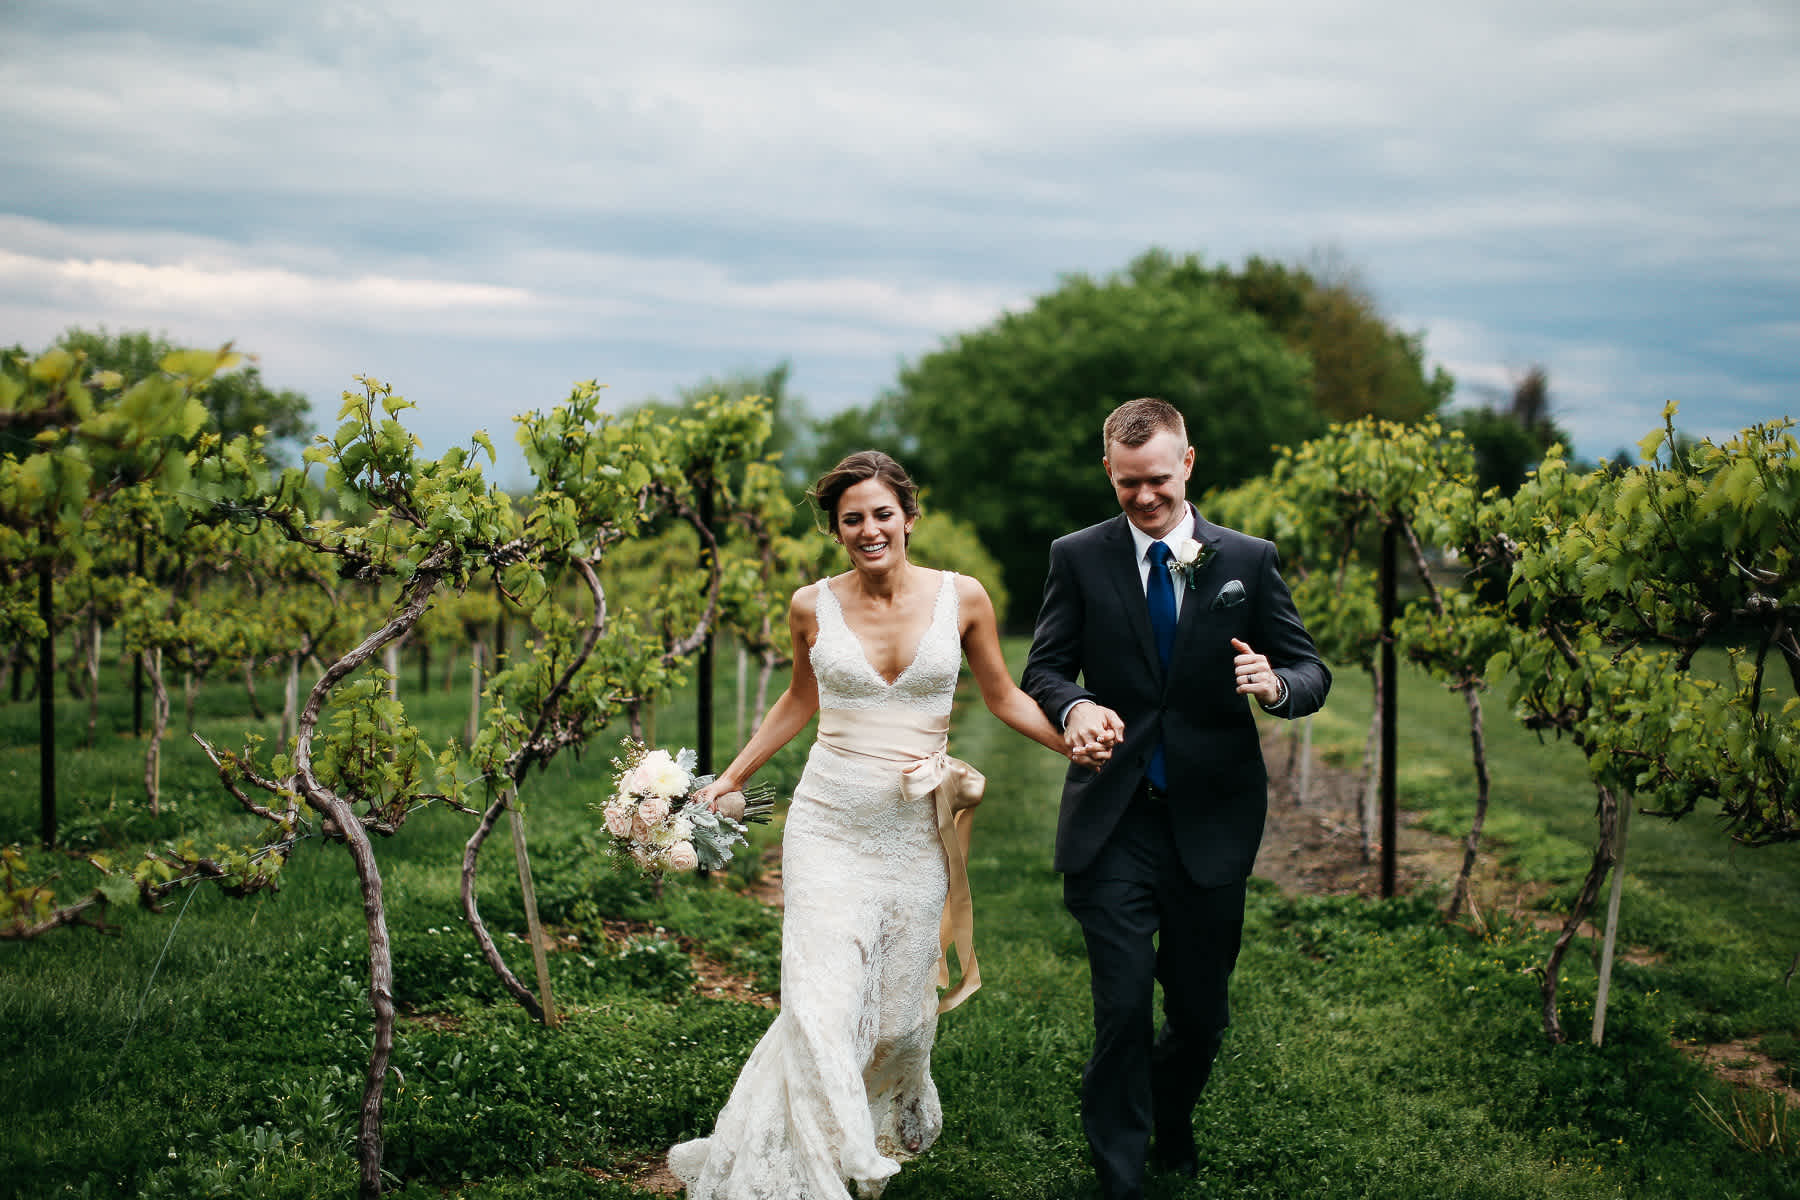 Pennsylvania-Newton-Rosebank-winery-spring-lifestyle-wedding-162